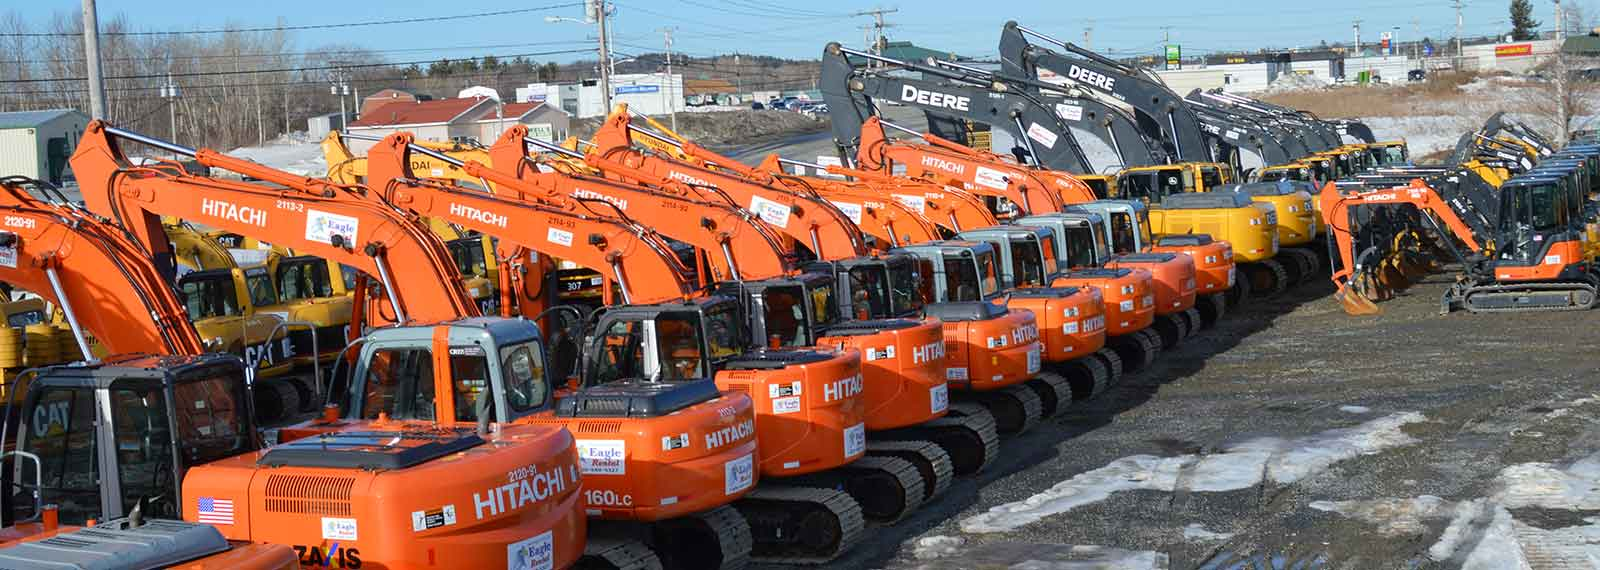 Slider-Eagle-Rental-Excavator-Rentals